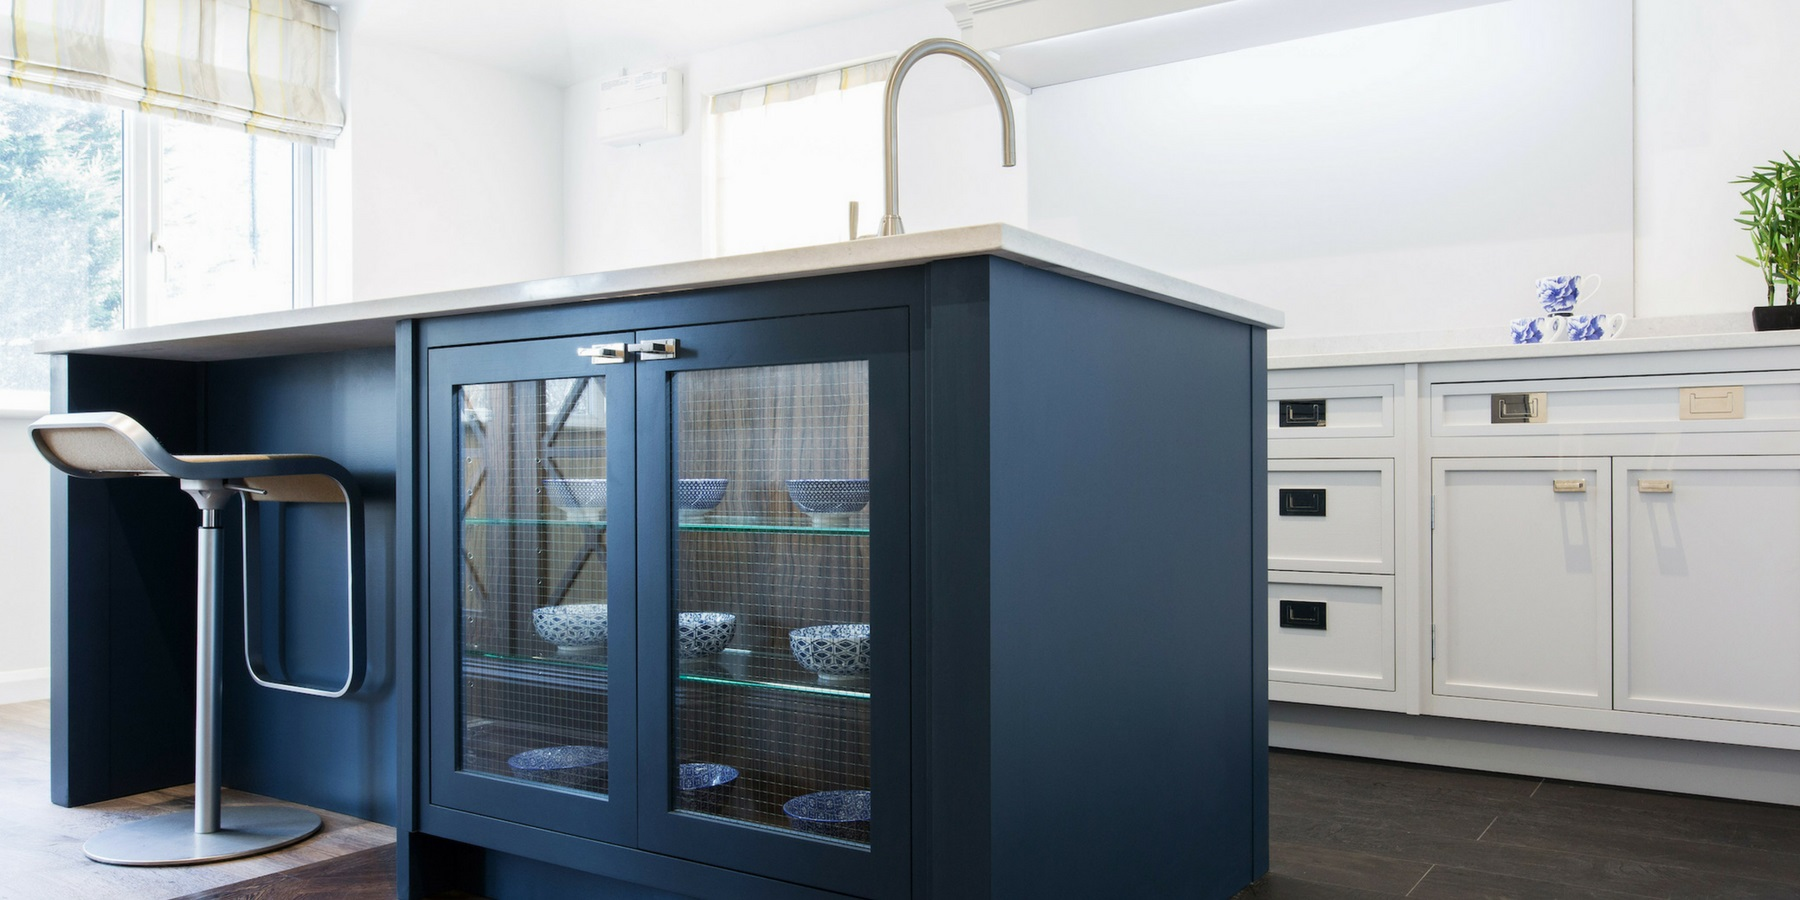 Bespoke Blue Contemporary Shaker Kitchen - Burlanes handmade Decolane kitchen island with glass doors.